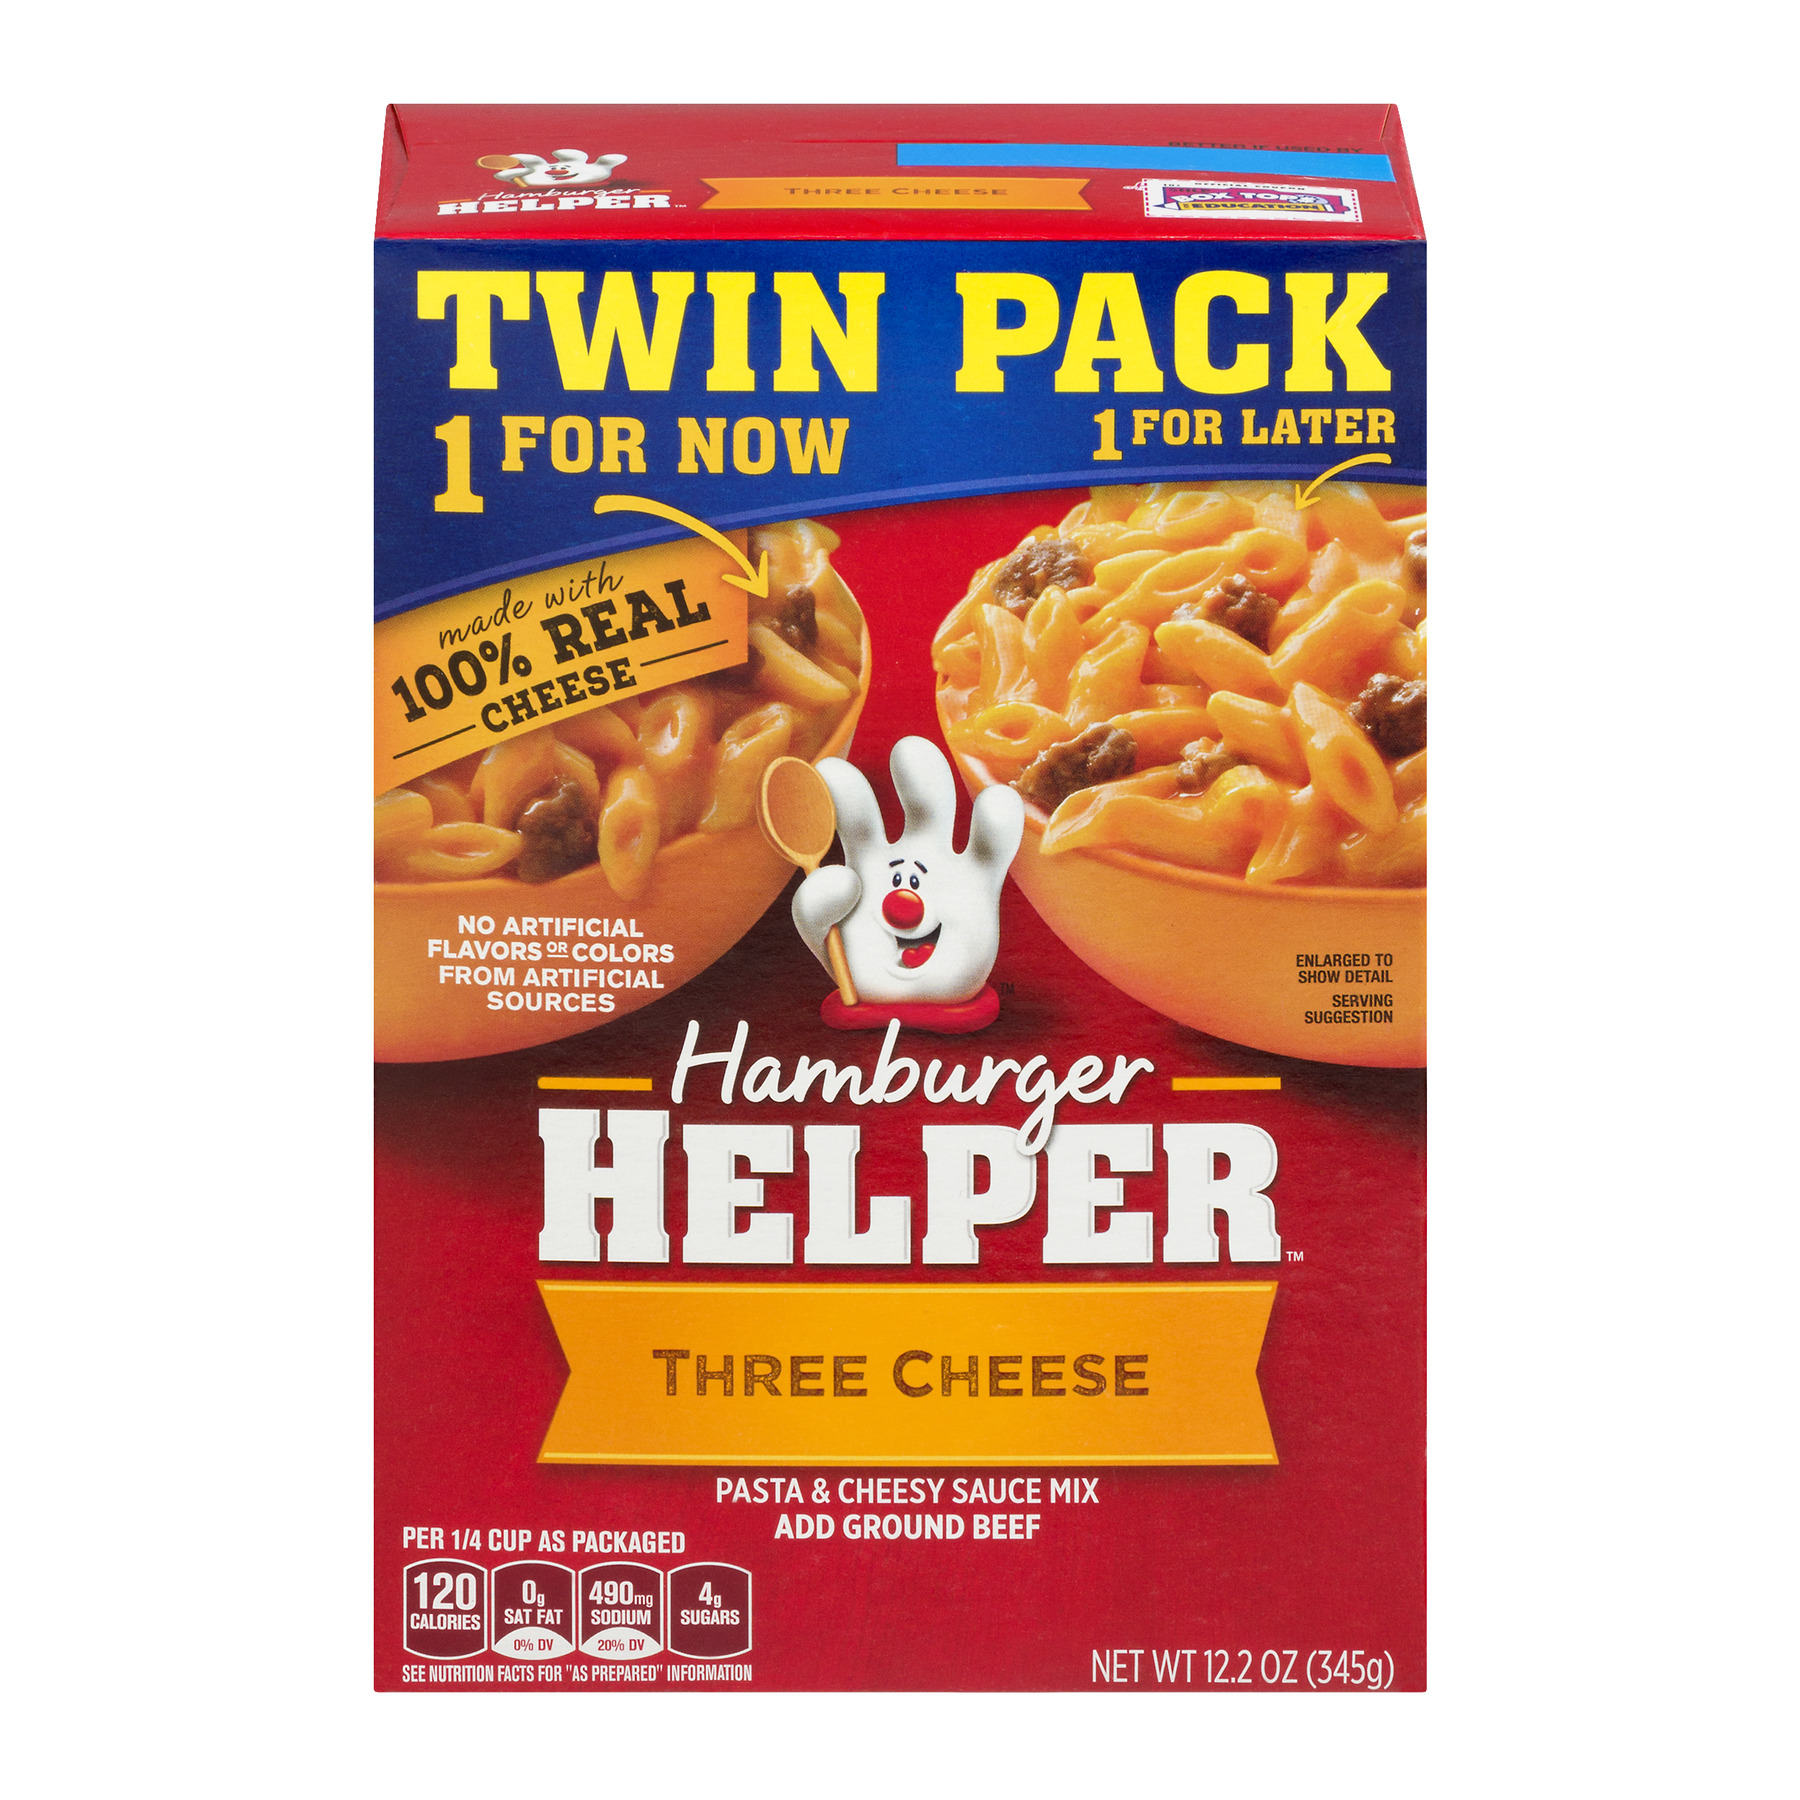 Betty Crocker Hamburger Helper Three Cheese 2 - 12.2 oz Box